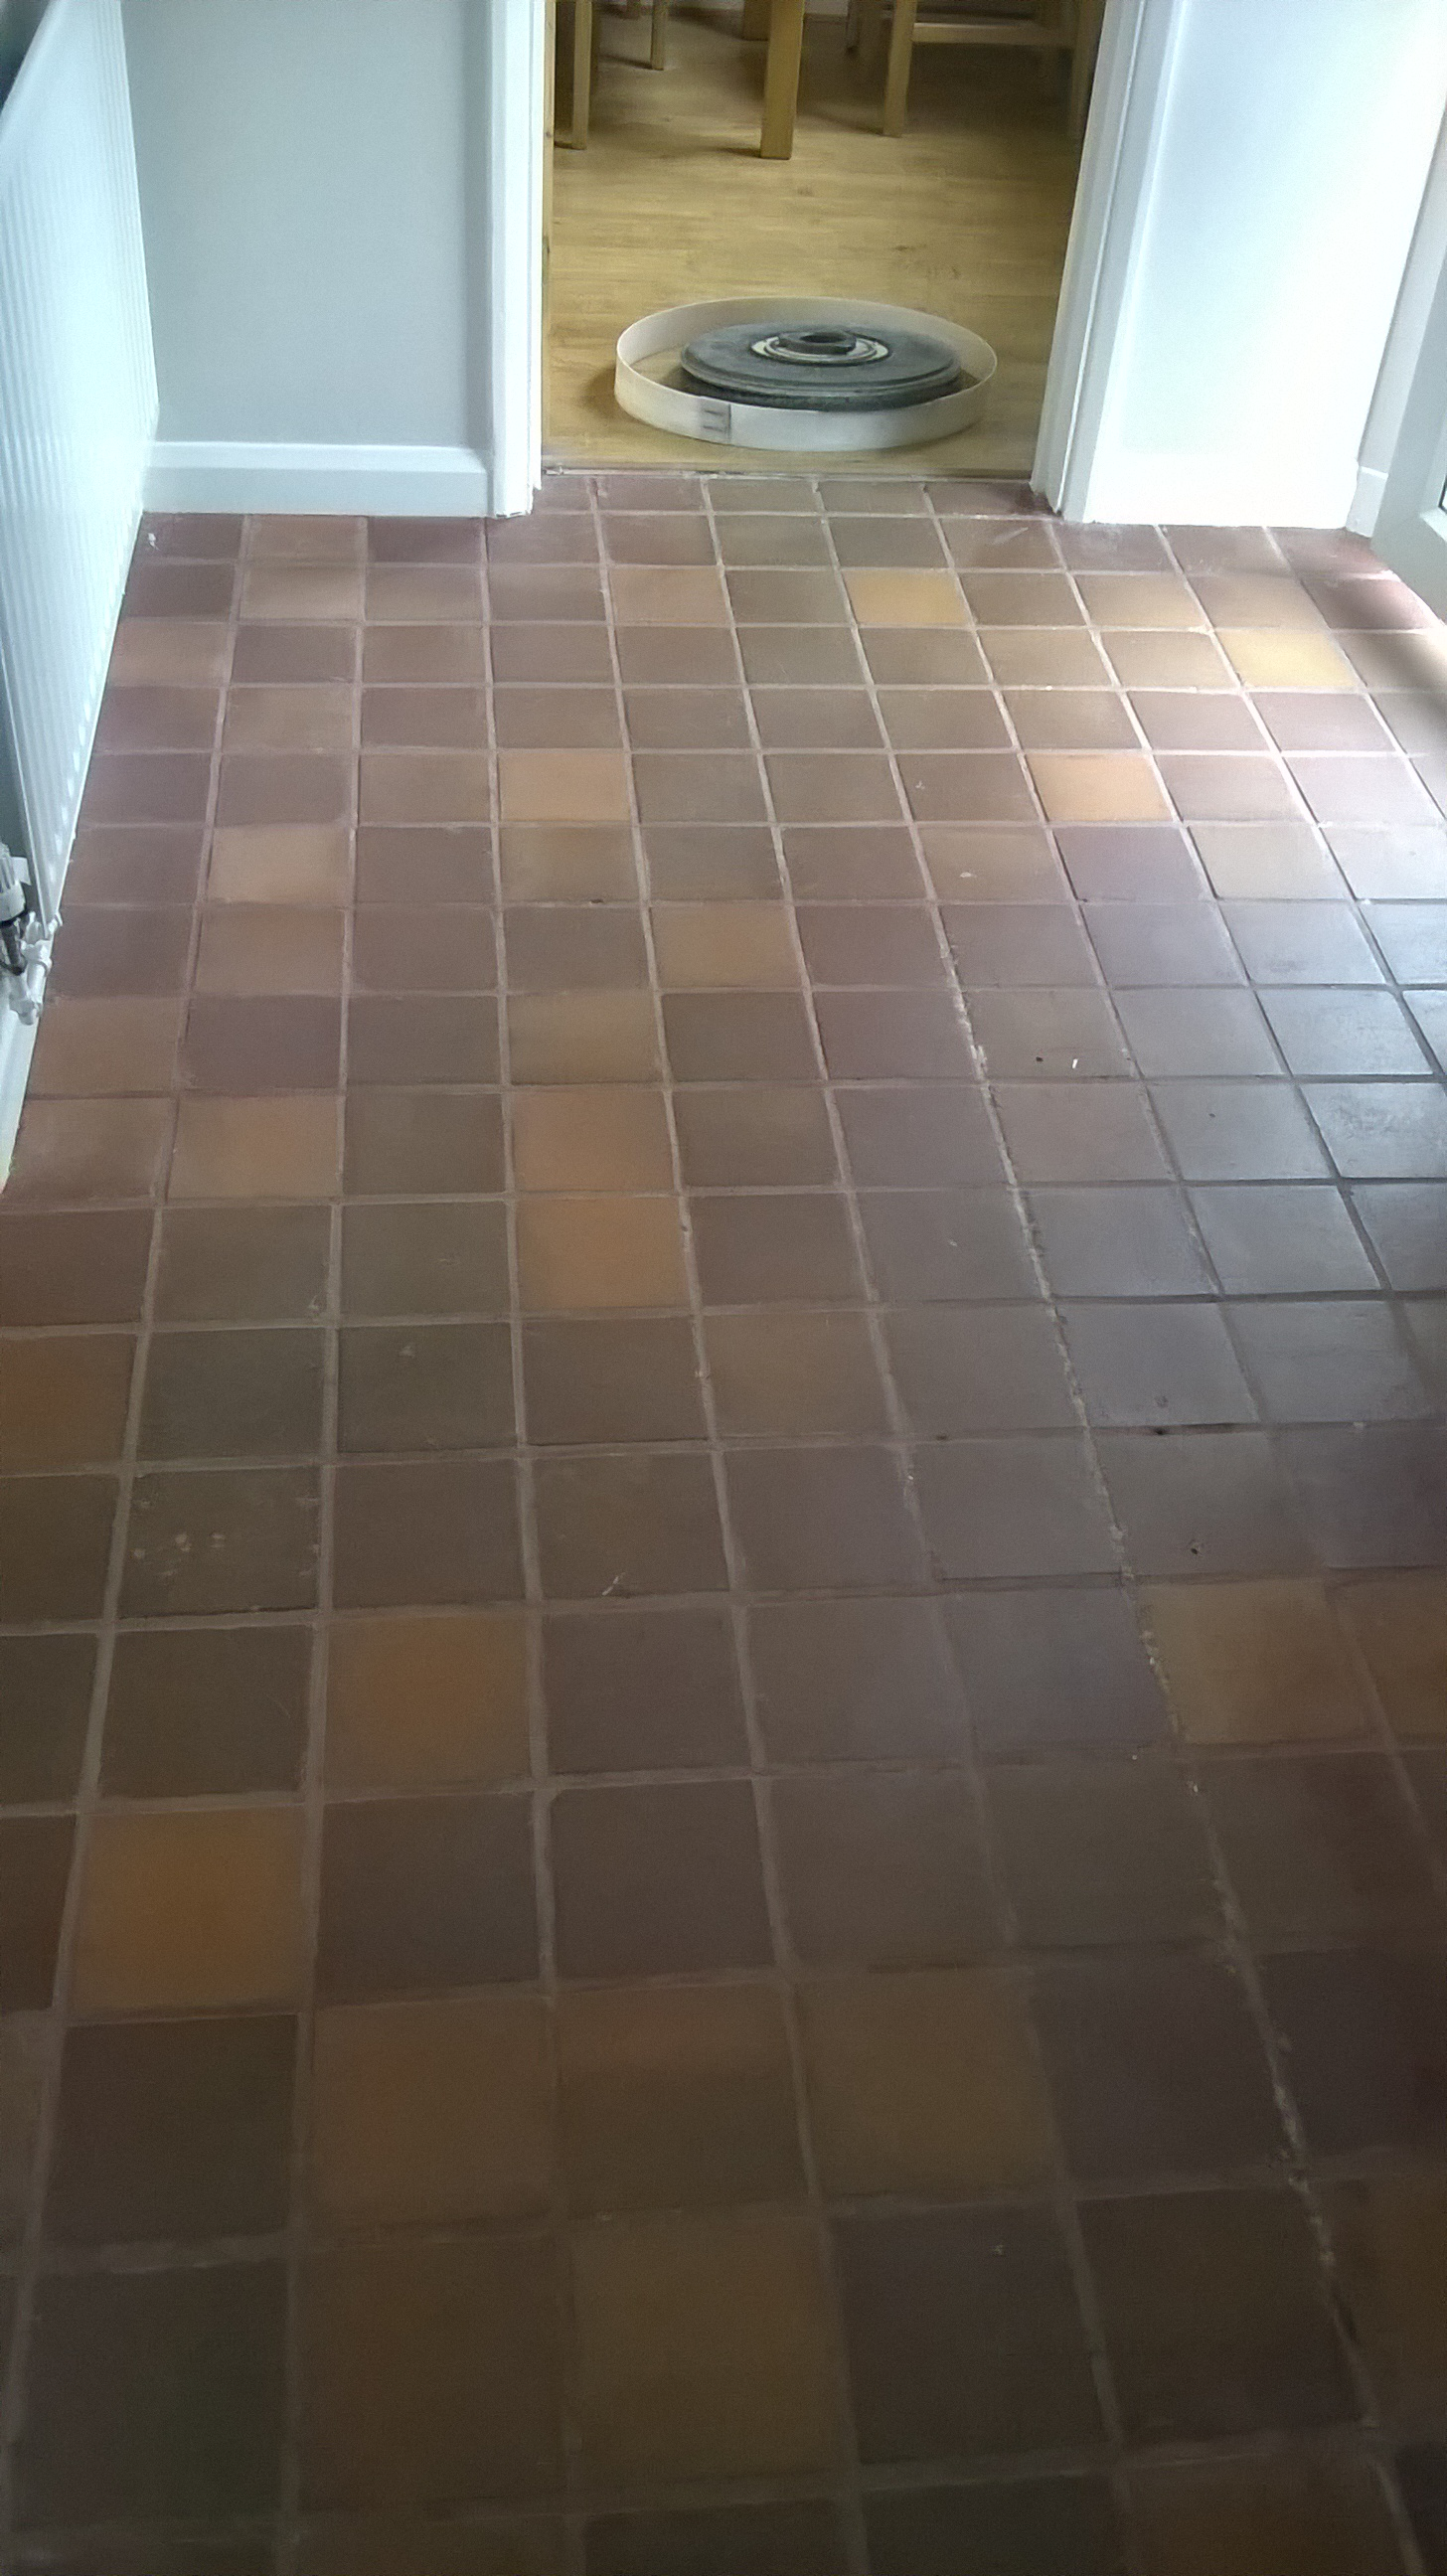 Quarry Tiled Kitchen Before Cleaning in Tutbury Burton on Trent